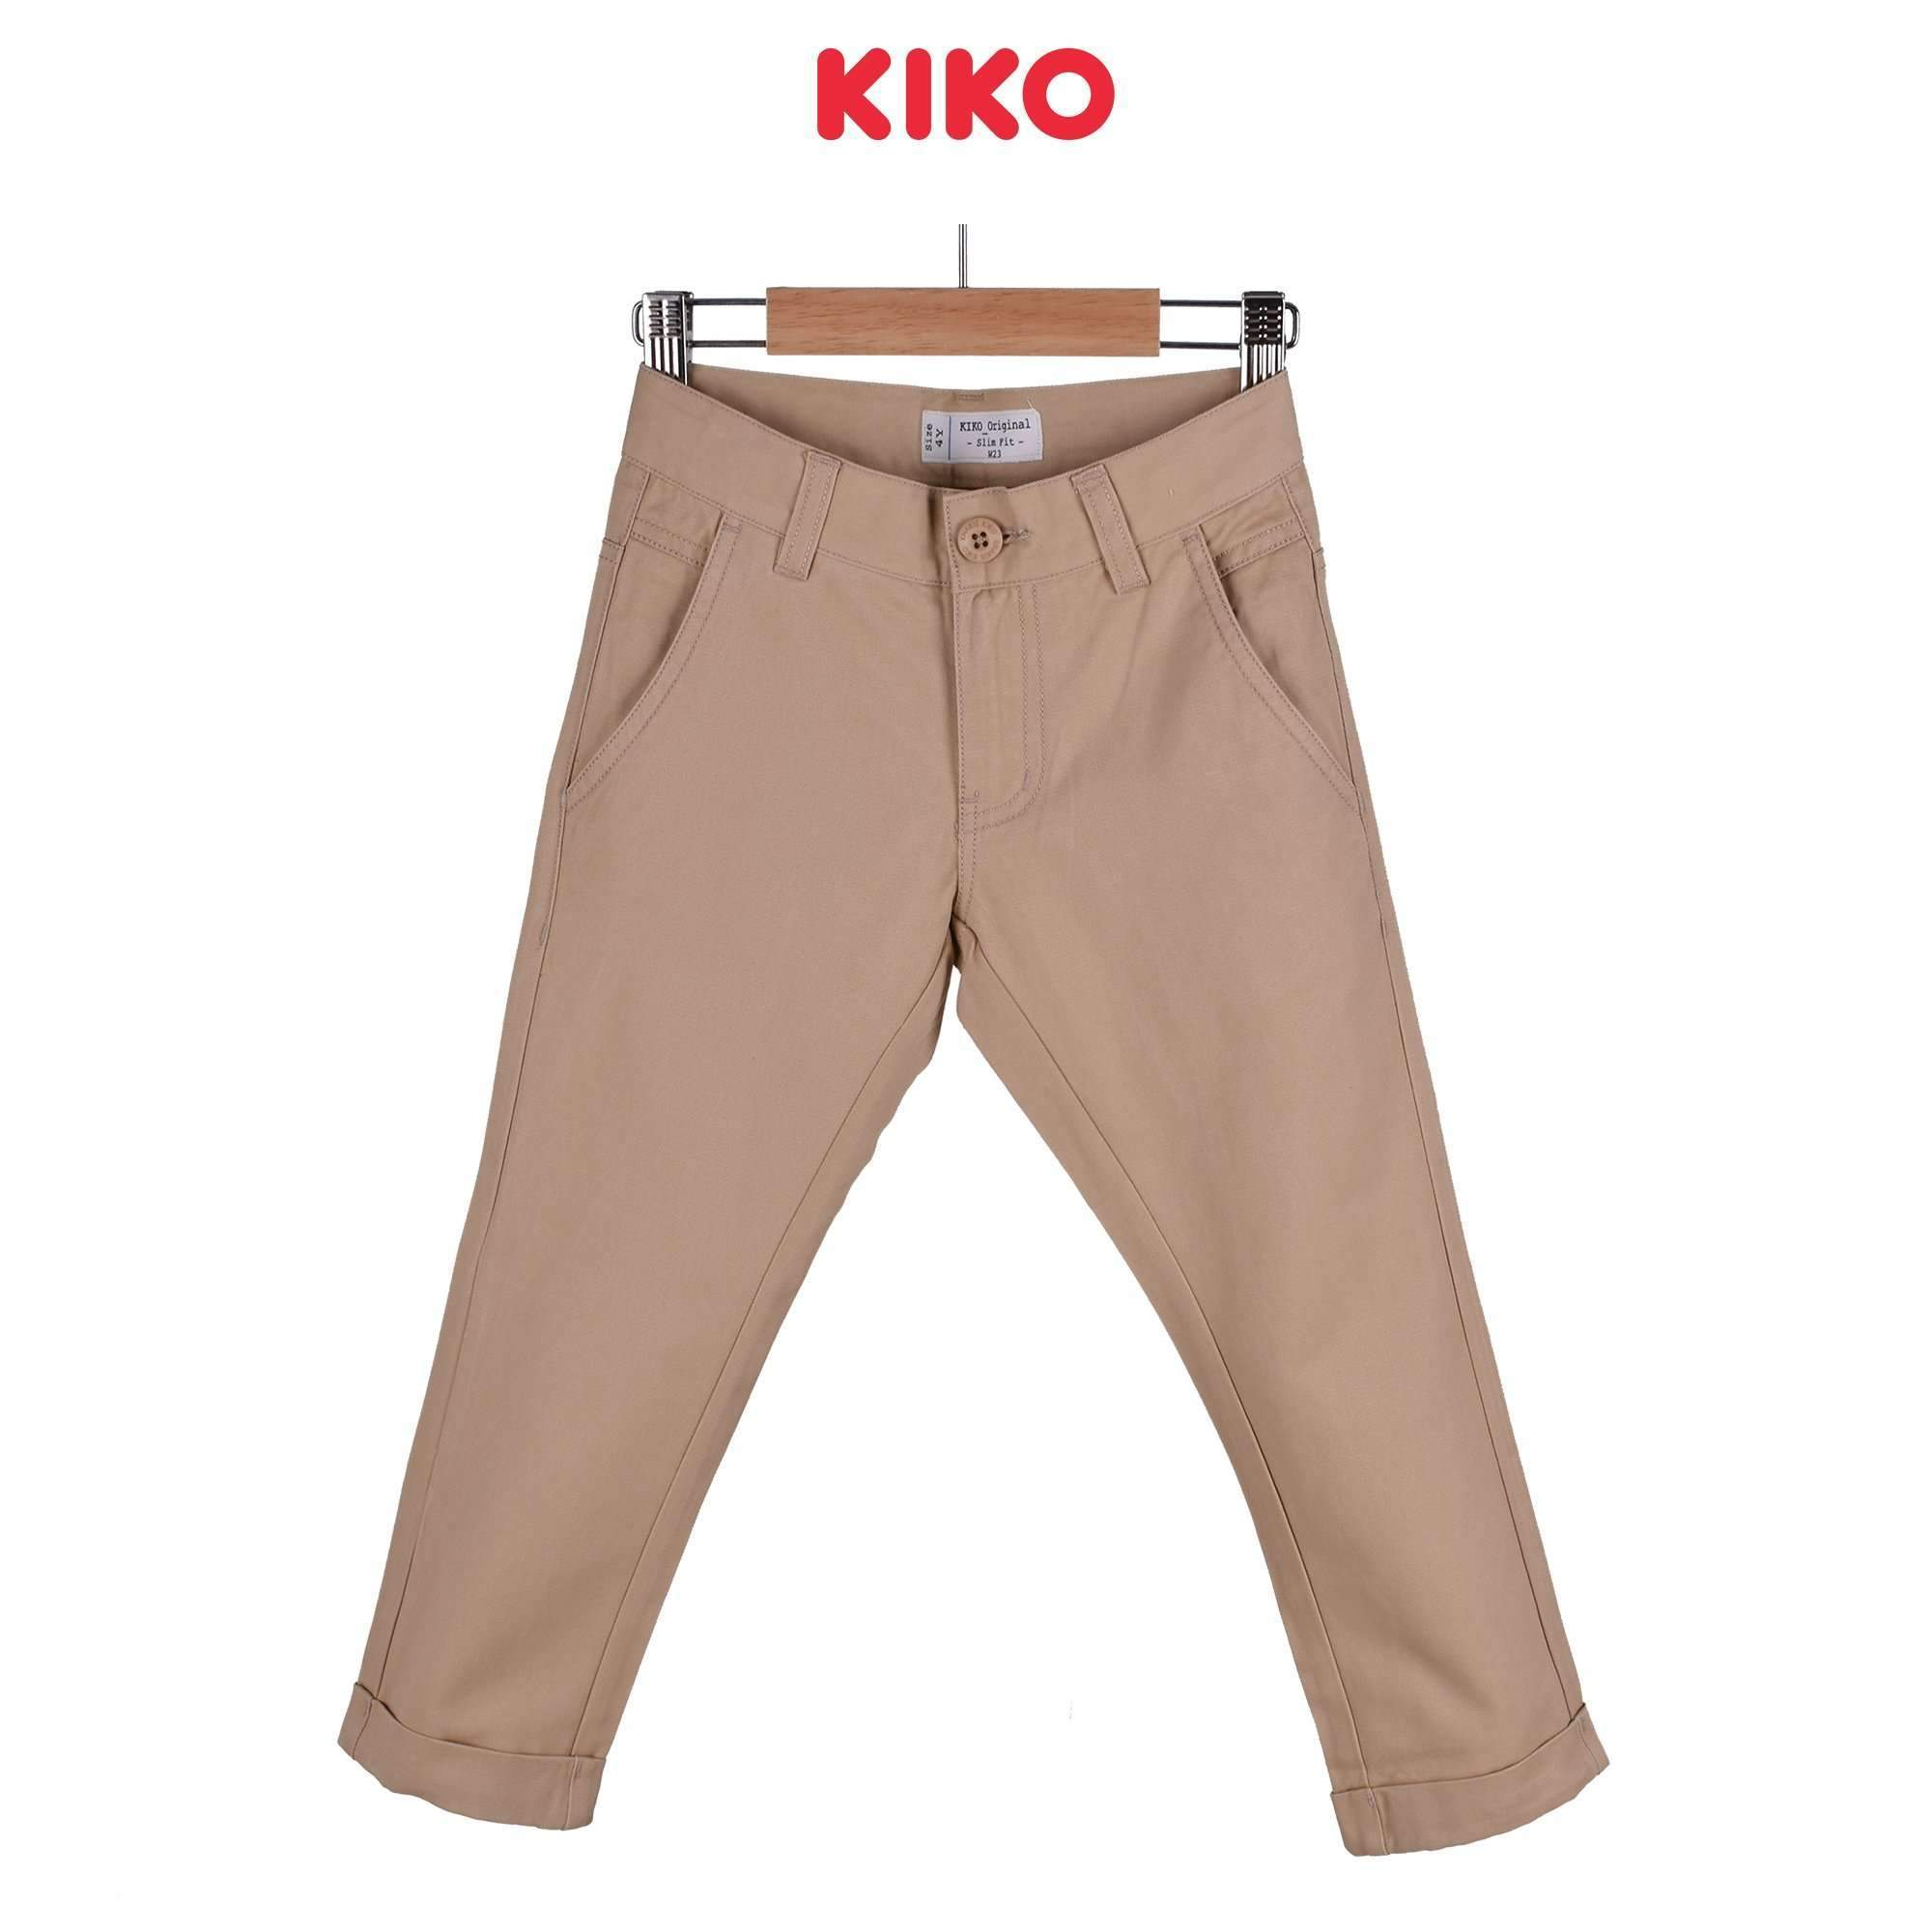 KIKO Boy Long Pants Slim Fit - Beige 120064-252 : Buy KIKO online at CMG.MY